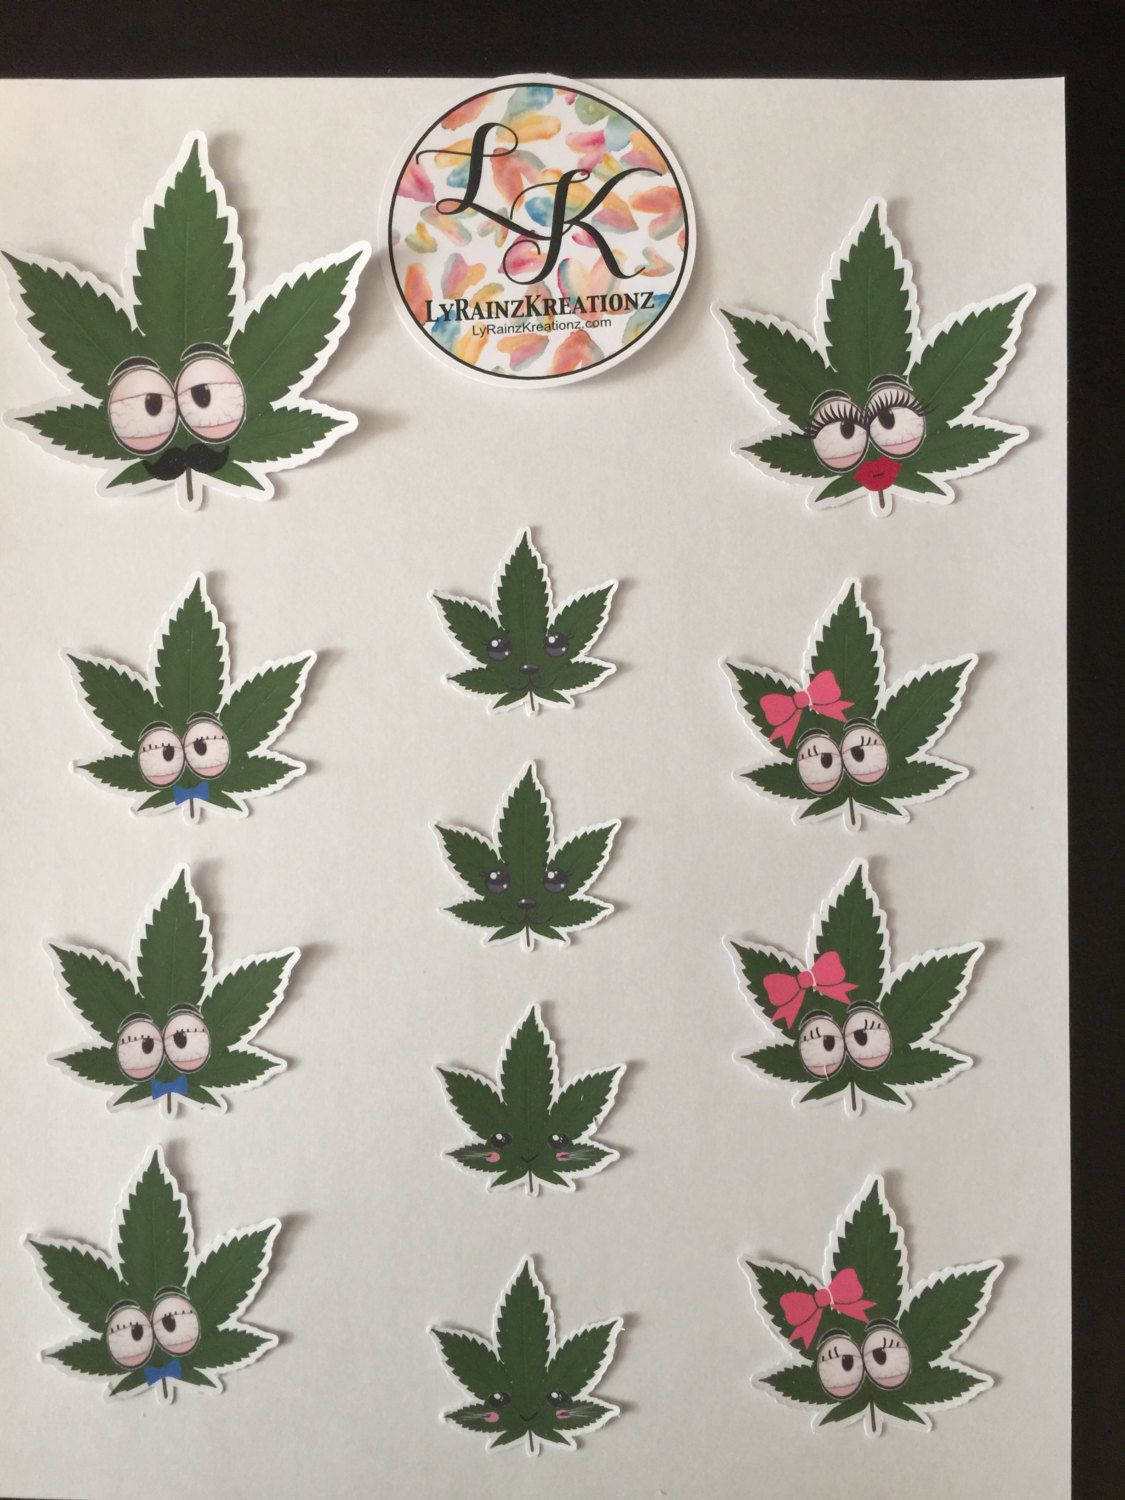 The Weed Family - window/laptop/car decals by LyRainzKreationz on Etsy